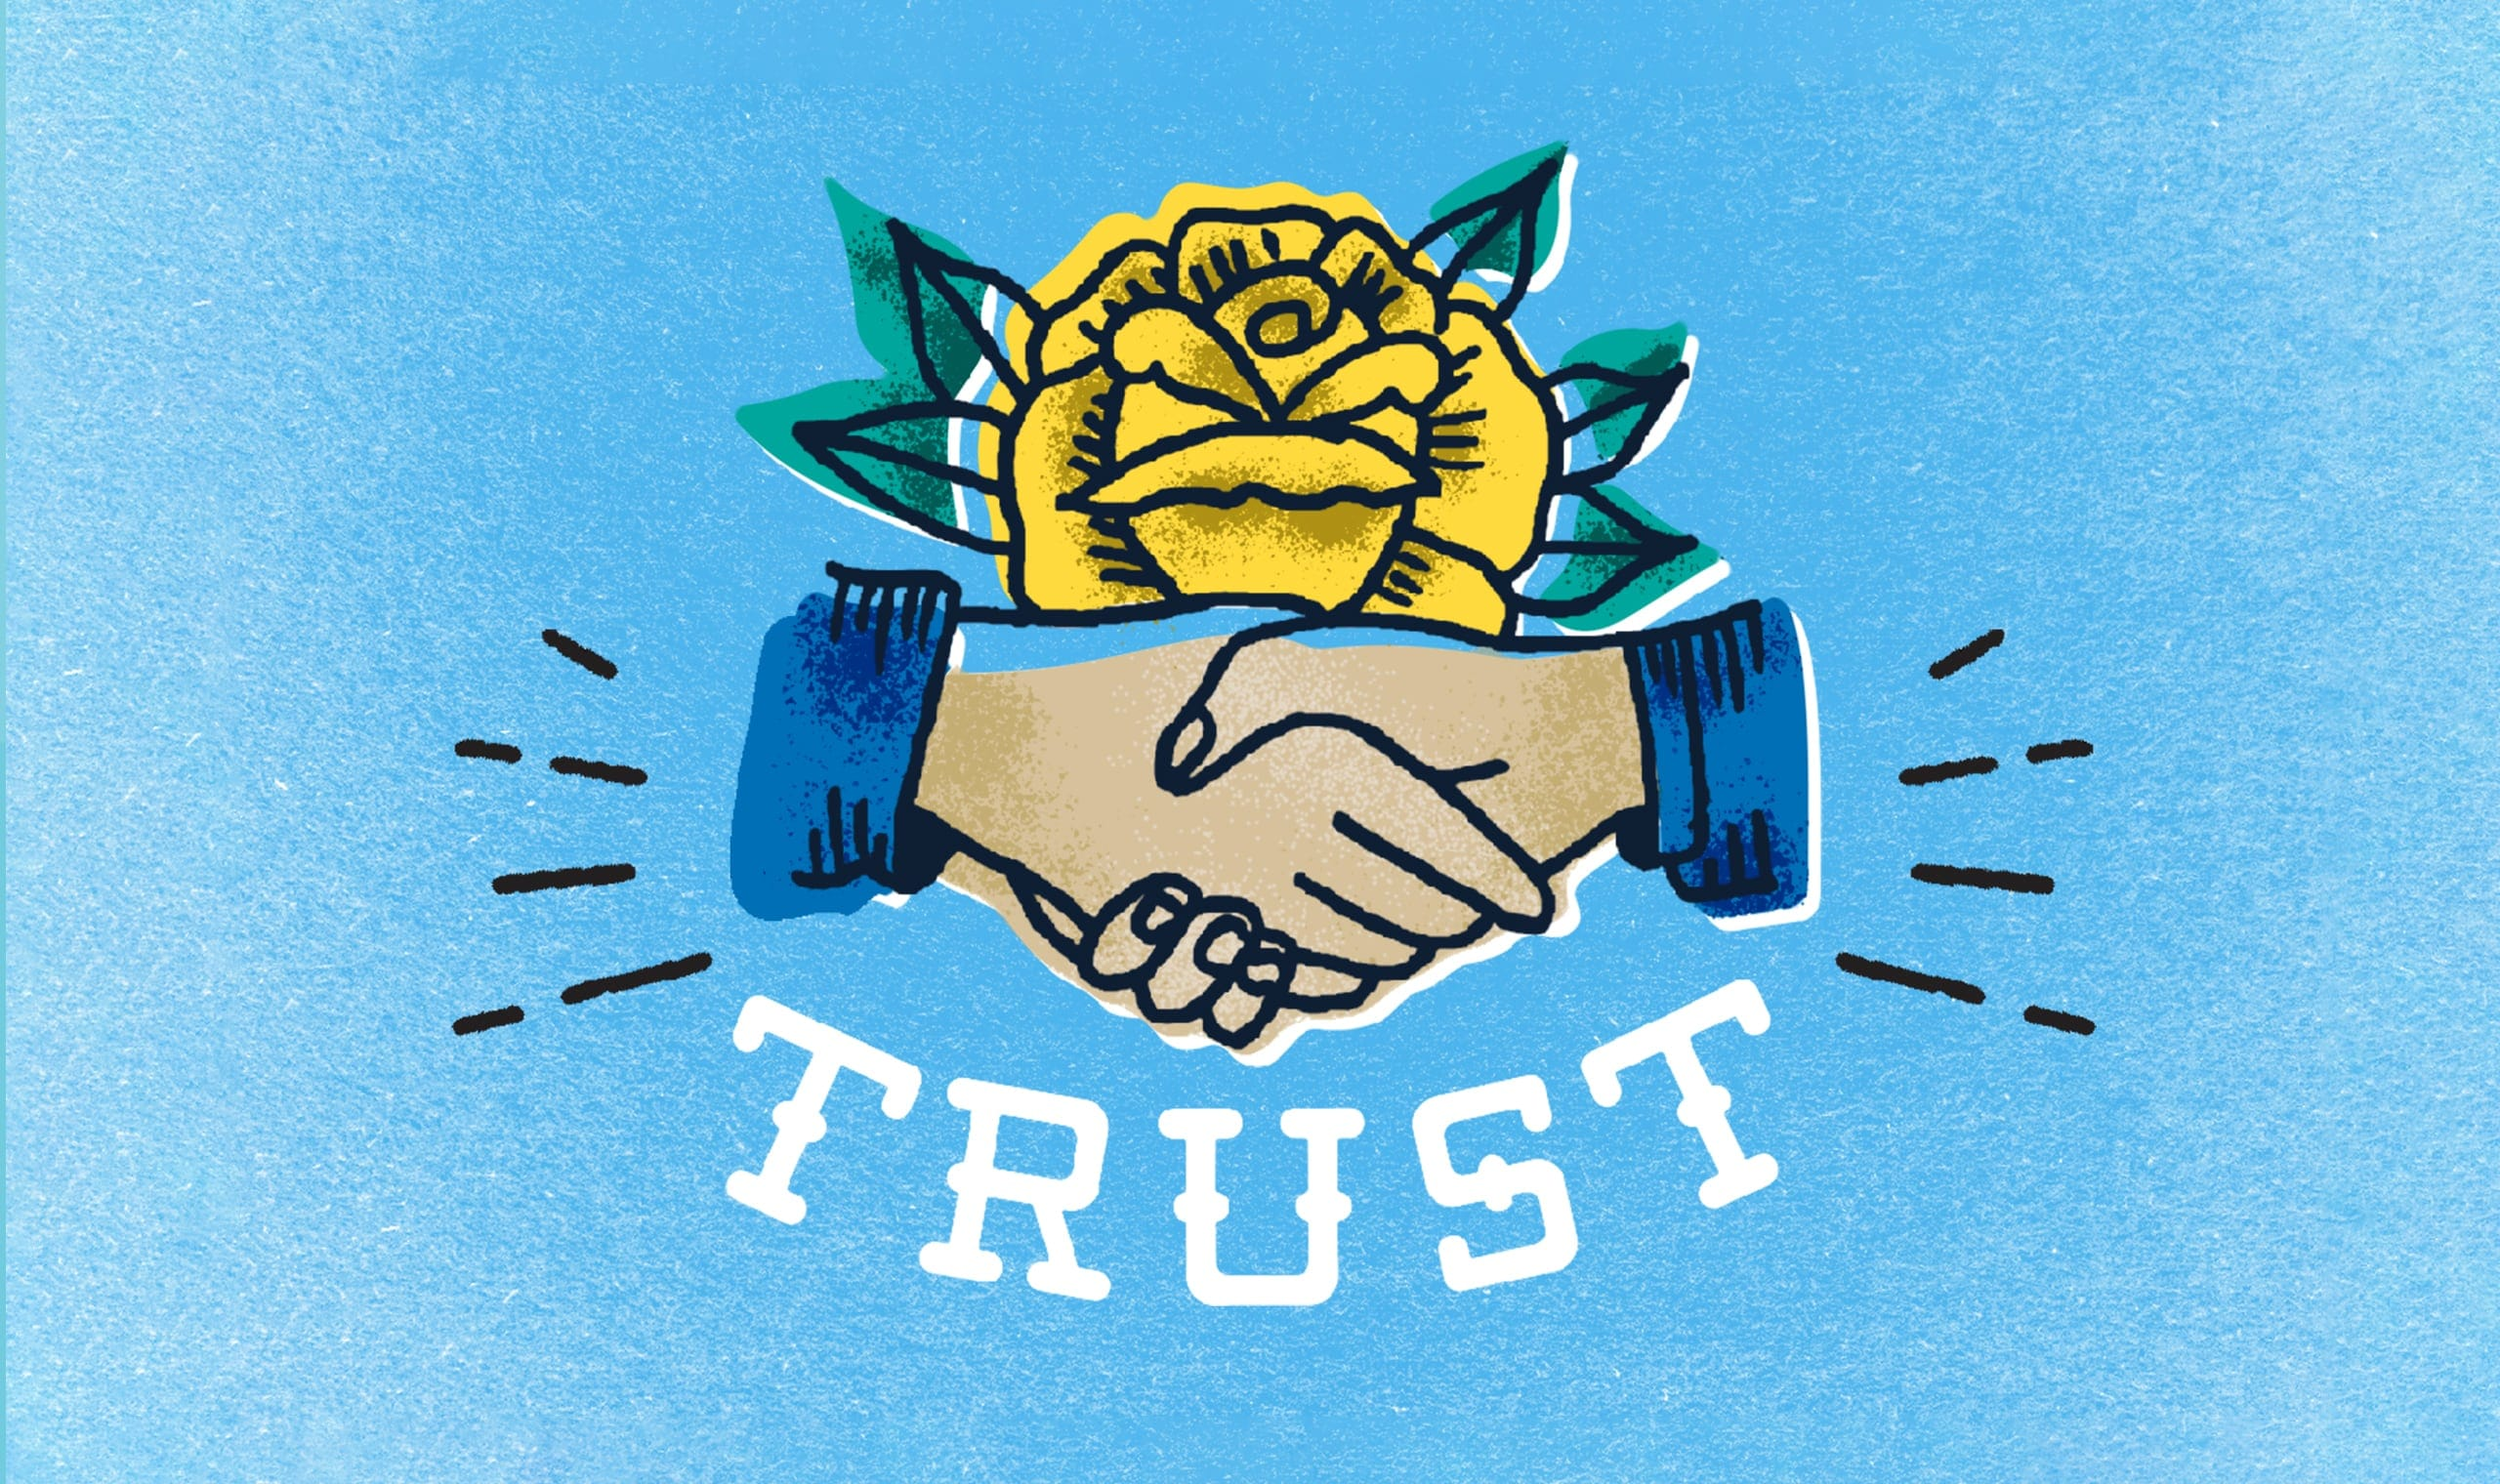 When it comes to trust, luck has nothing to do with it